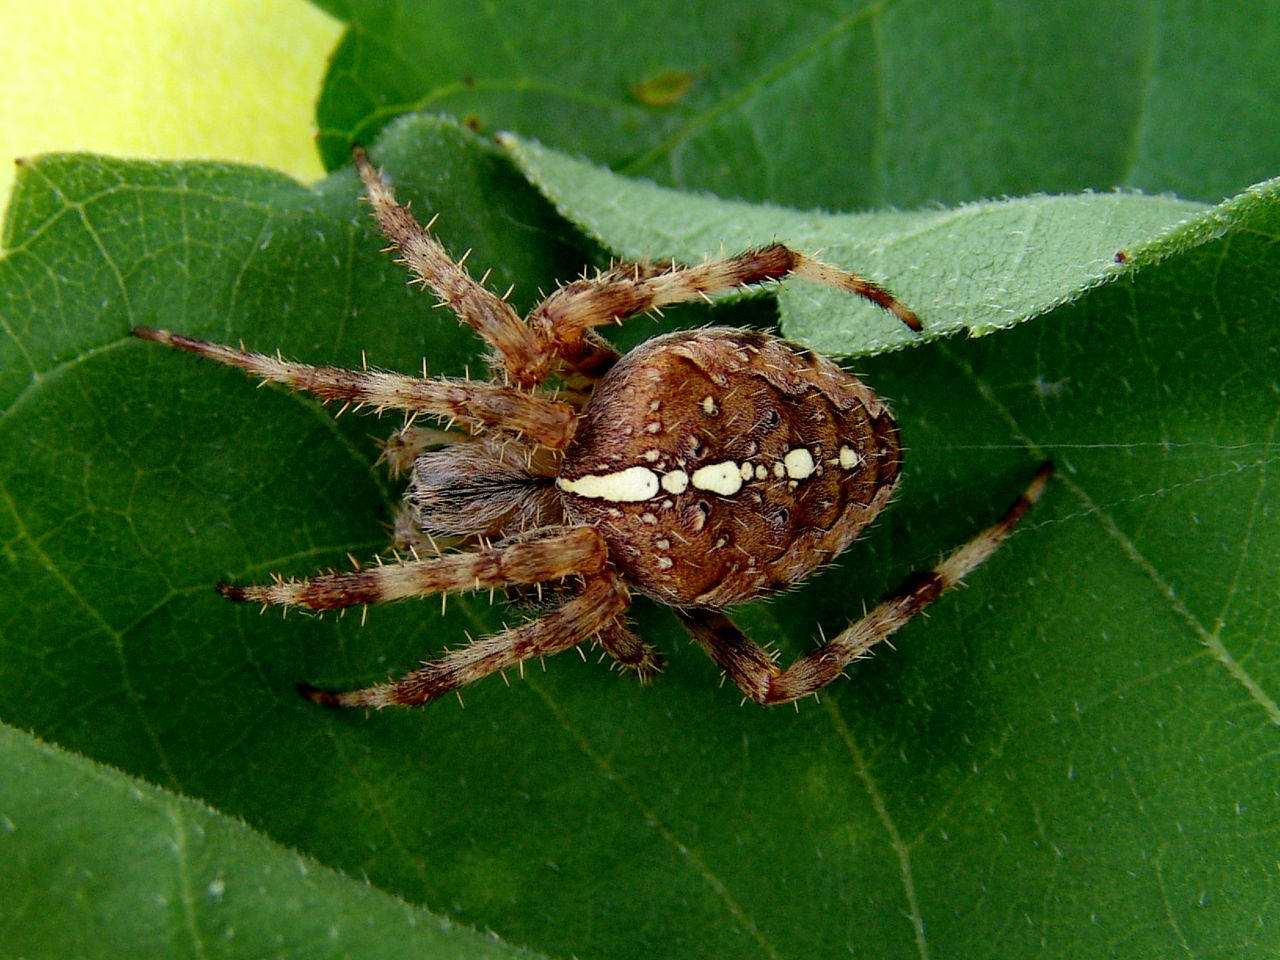 plant part, insect, leaf, invertebrate, animal, animal themes, animal wildlife, arachnid, animals in the wild, arthropod, spider, one animal, close-up, green color, nature, no people, day, outdoors, zoology, fragility, animal leg, poisonous